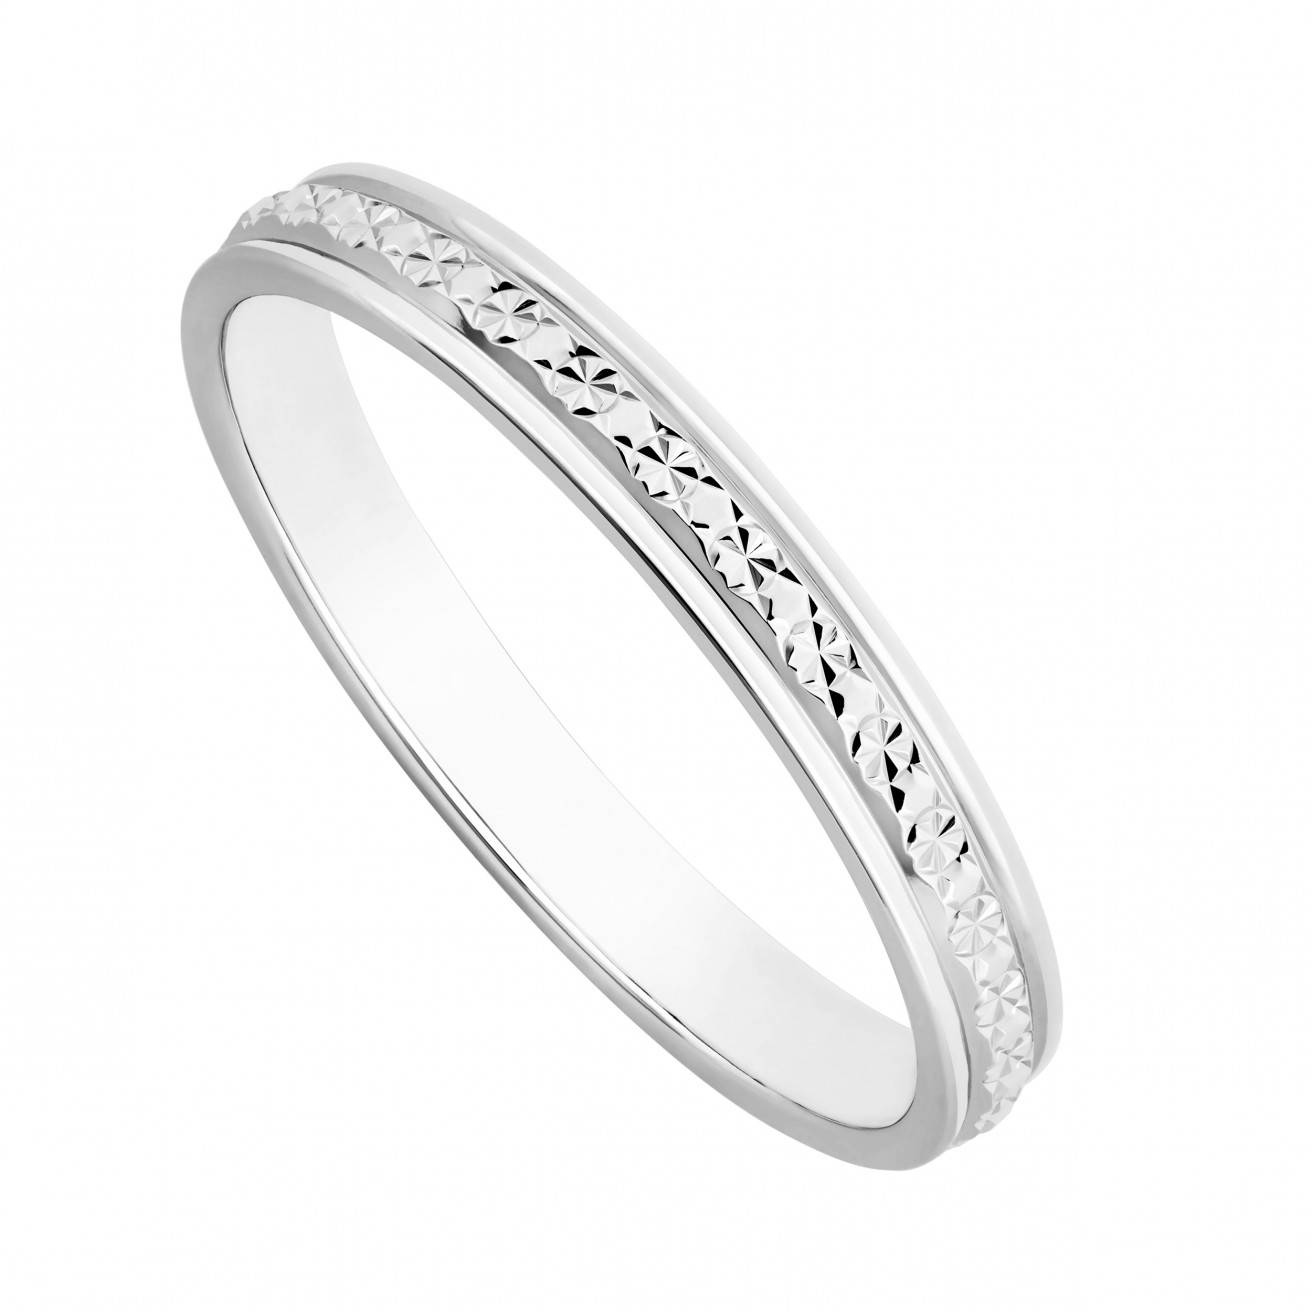 Buy White Gold Wedding Rings Online – Fraser Hart Pertaining To White Gold Diamond Cut Wedding Rings (View 3 of 15)